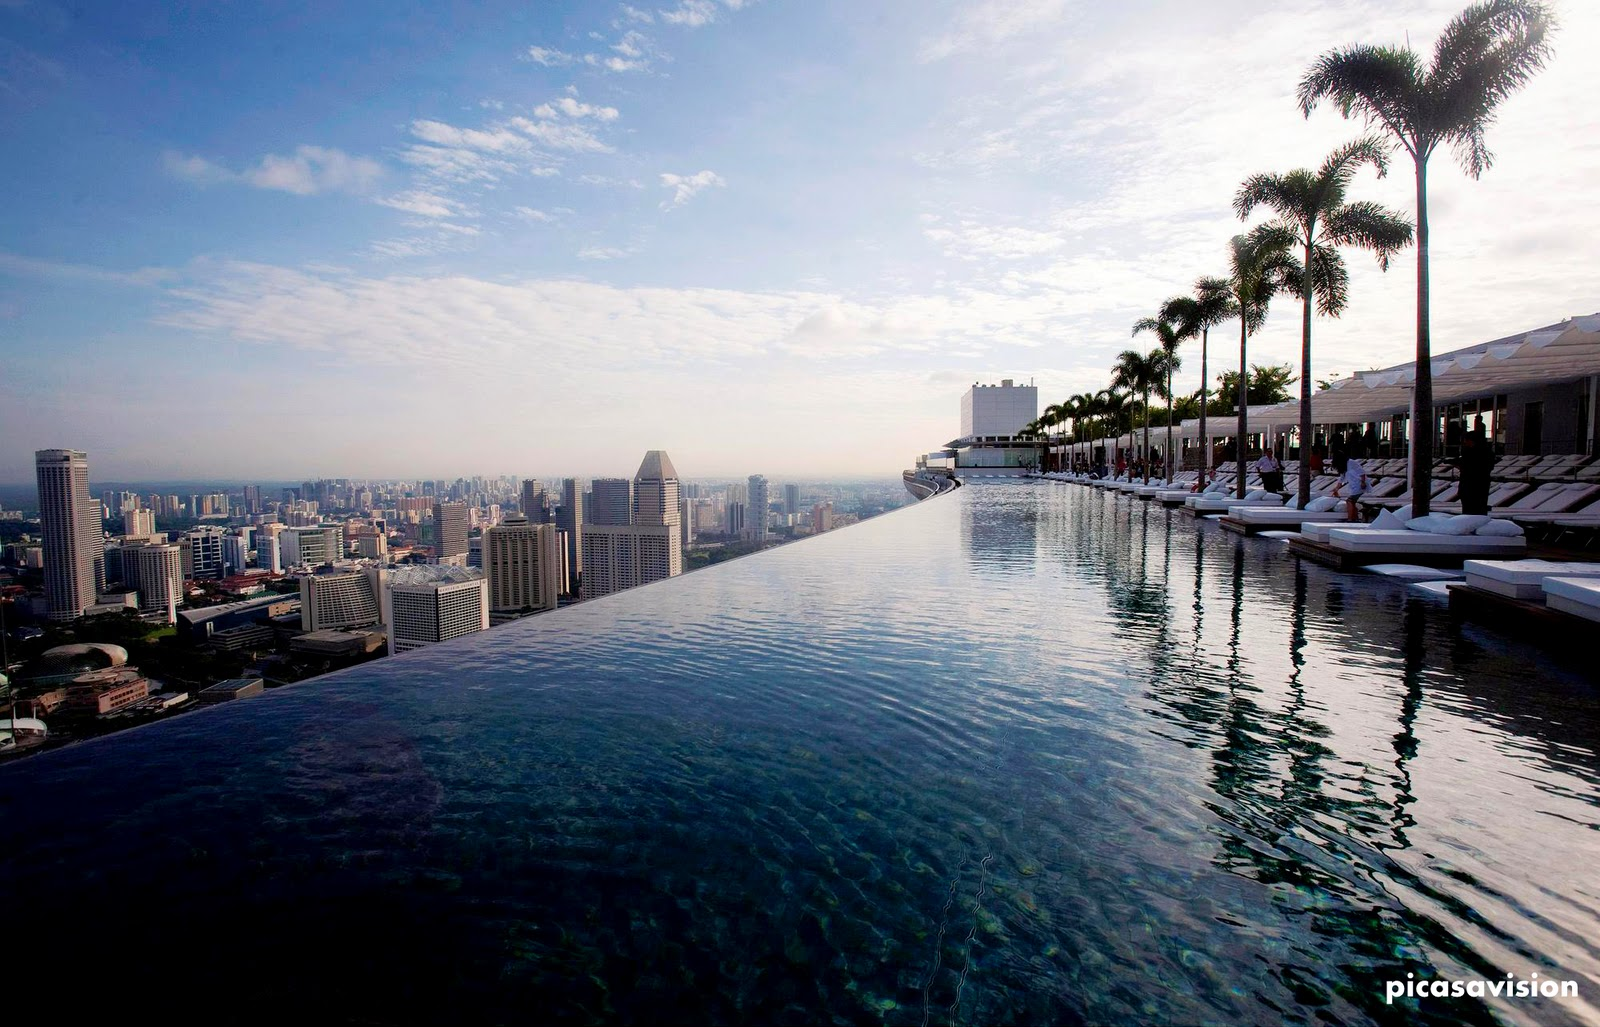 Picasa vision swimming pool on 55th floor marina bay sands hotel singapore - Marina bay sands resort singapore swimming pool ...